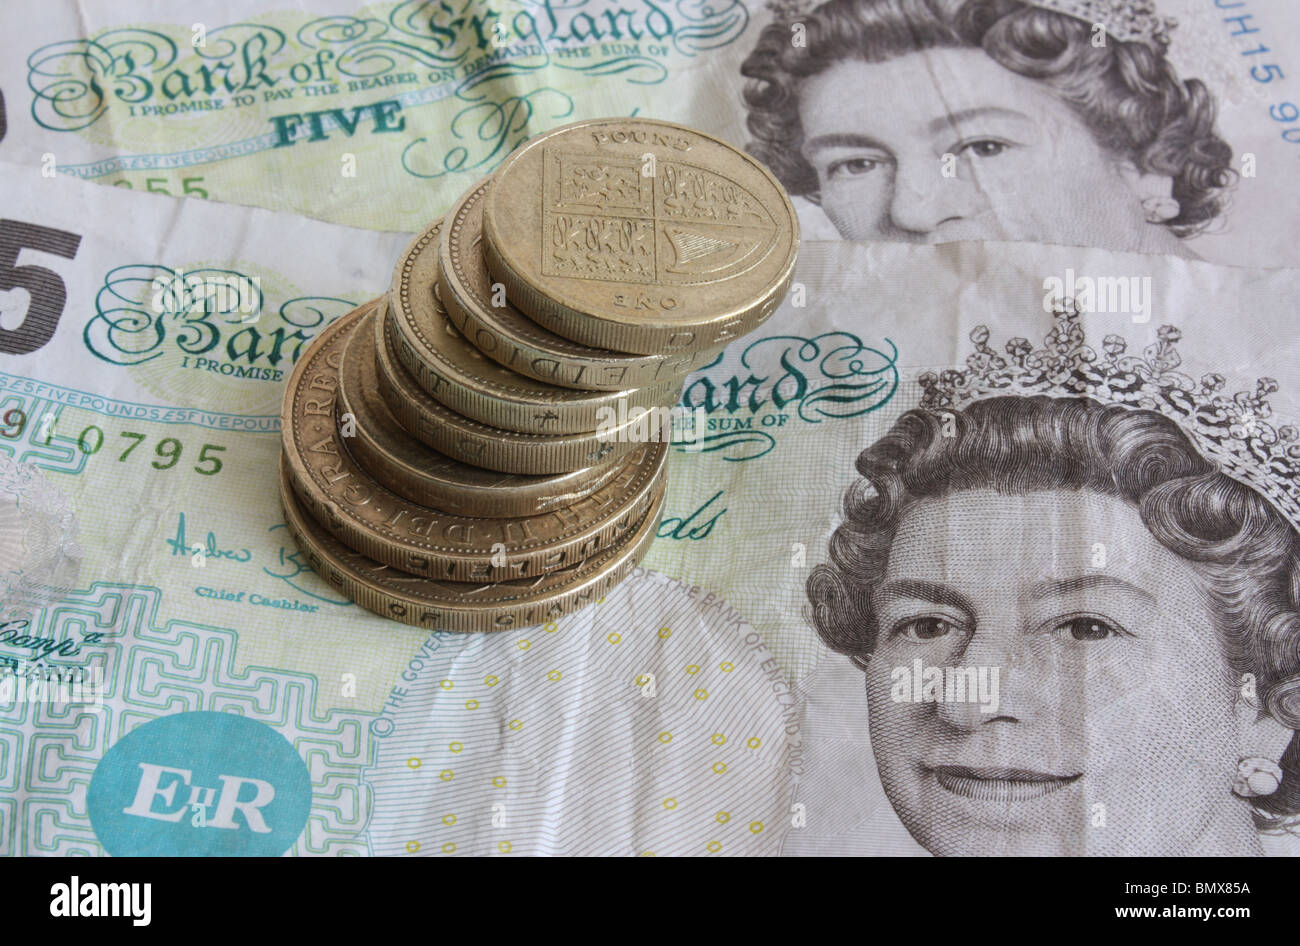 A stash of used, dirty English money consisting of coins and notes - Stock Image